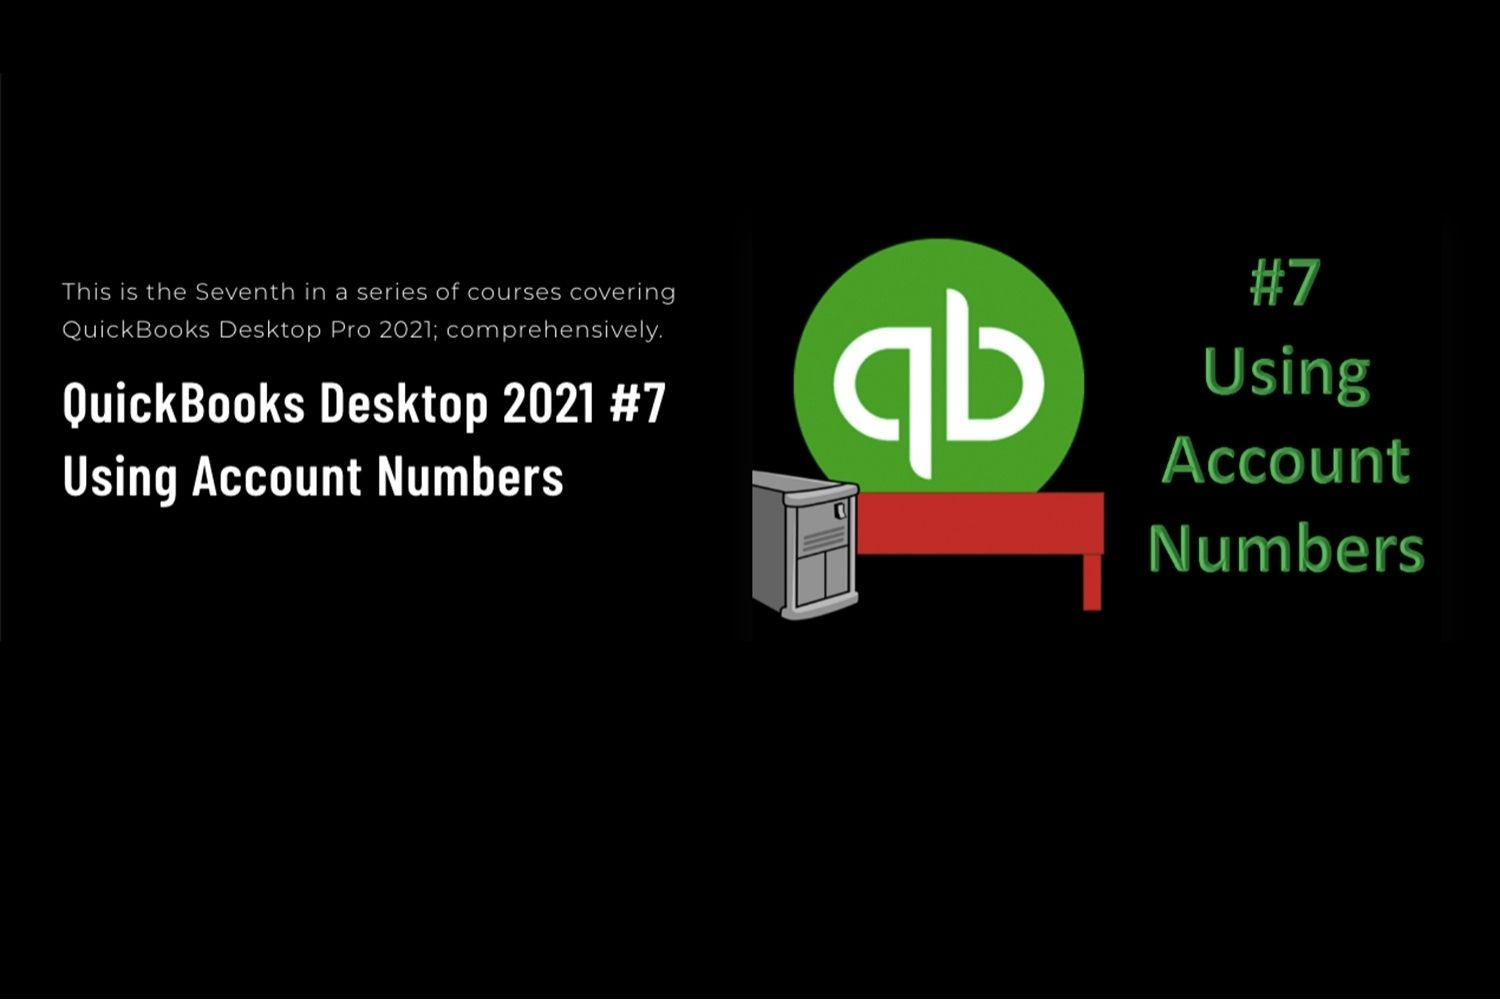 QuickBooks Desktop Pro 2021 - learn about using account numbers.